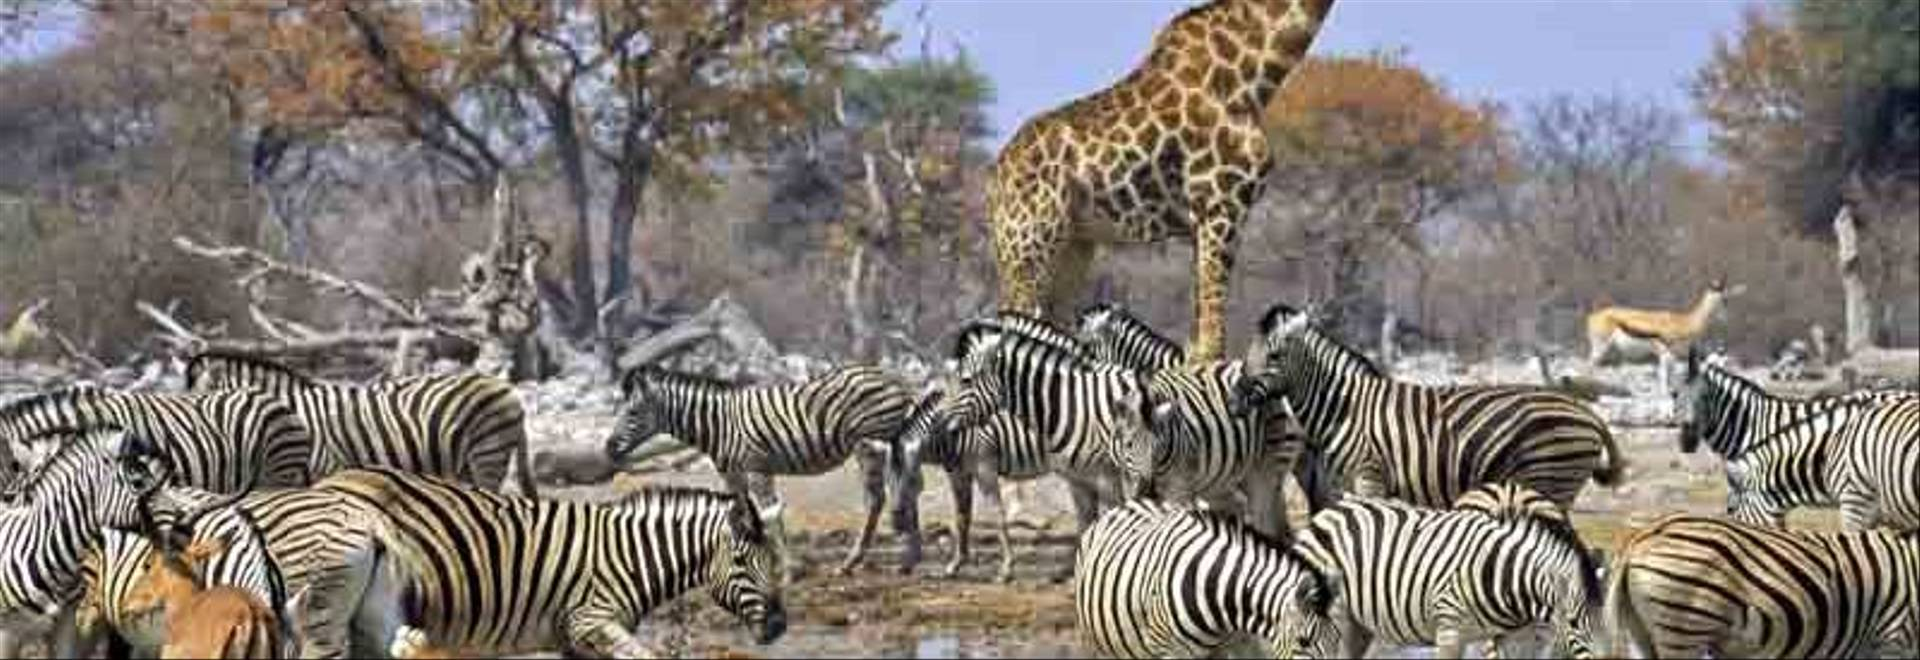 Large group of animals at a waterhole, a drinking place in Etosha, Namibia. The group consists of Burchell's zebras, Springb…